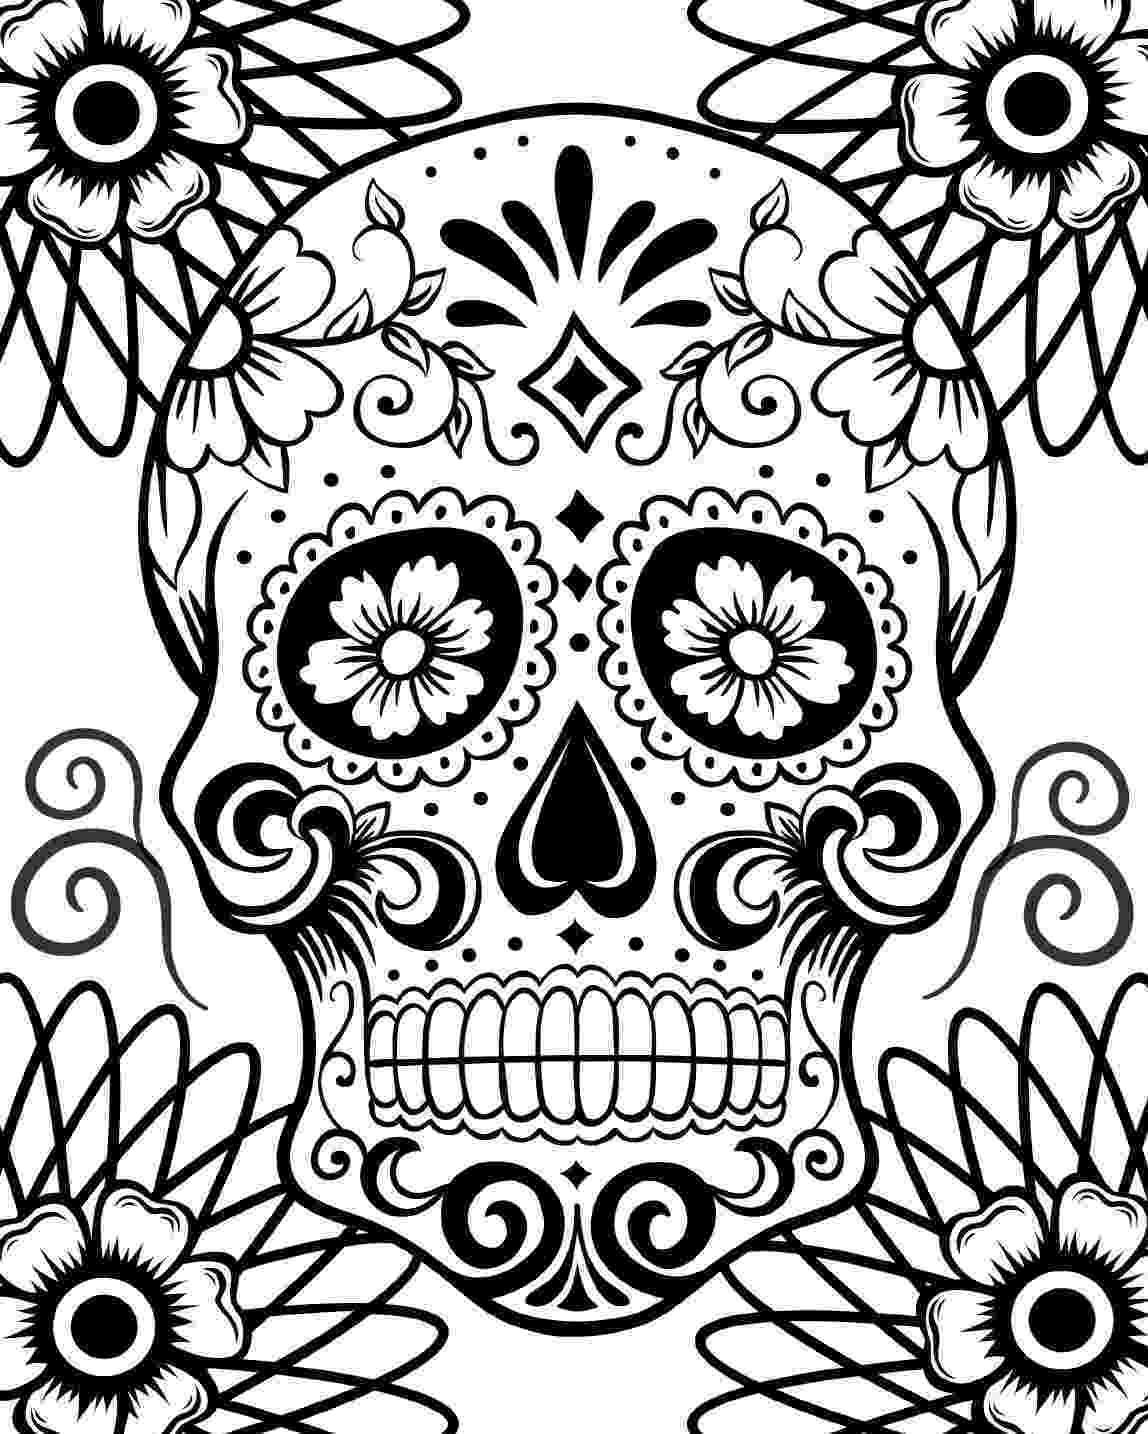 day of the dead printable pictures free printable day of the dead coloring pages best of printable dead the pictures day